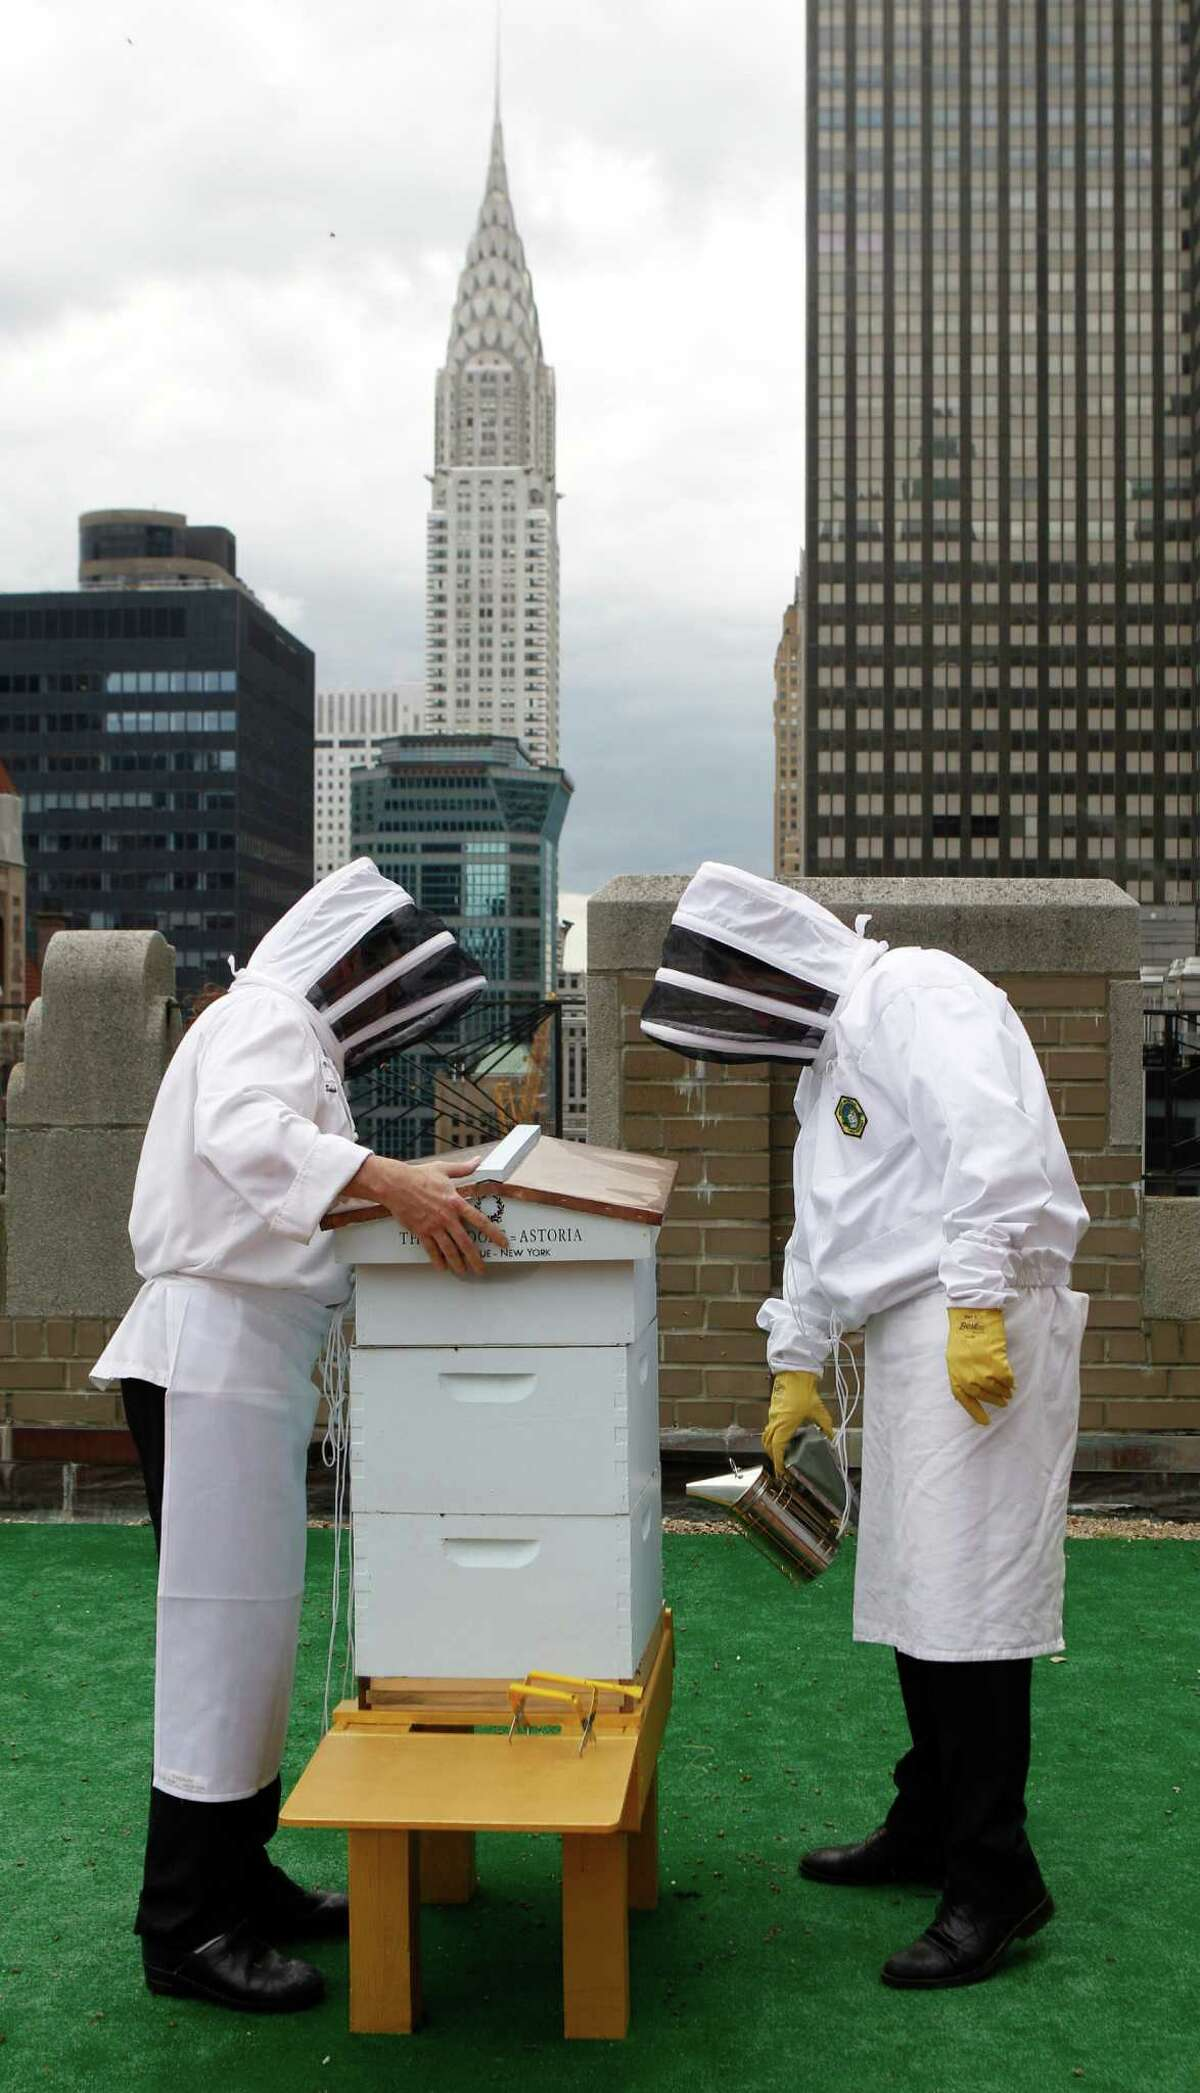 Waldorf=Astoria hotel sous chef Josh Bierman, left, and culinary director David Garcelon wear bee suits over their chef's uniforms as they inspect the hotel's bee hives on the 20th floor roof of the renowned hotel in New York, Tuesday, June 5, 2012. The hotel plans to harvest its own honey and help pollinate plants in the skyscraper-heavy heart of the city, joining a mini beekeeping boom that has taken over hotel rooftops from Paris to Times Square.